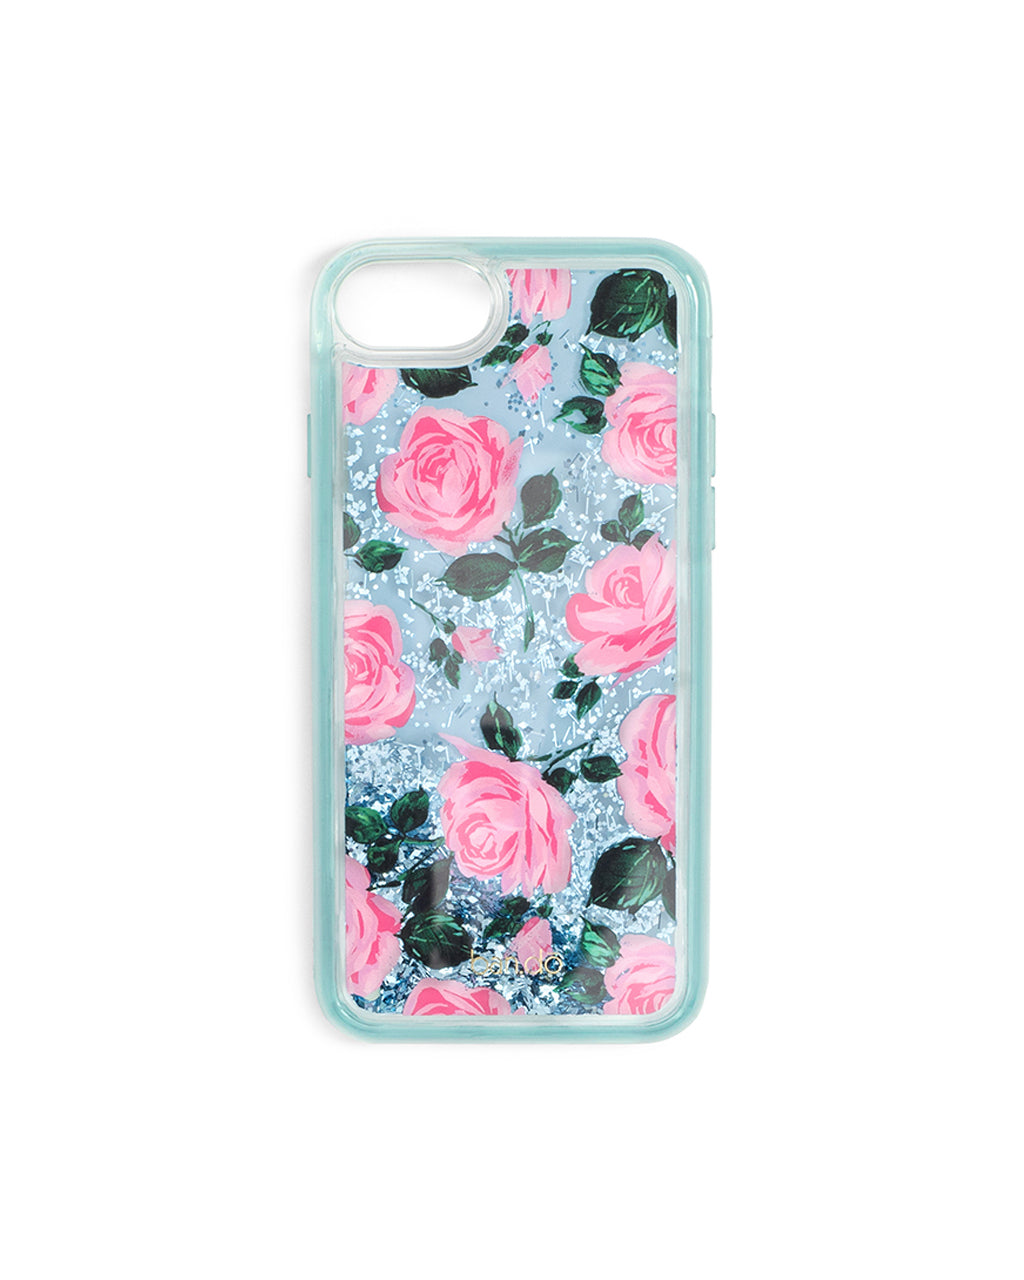 light blue iphone case with illustrated roses, filled with glitter